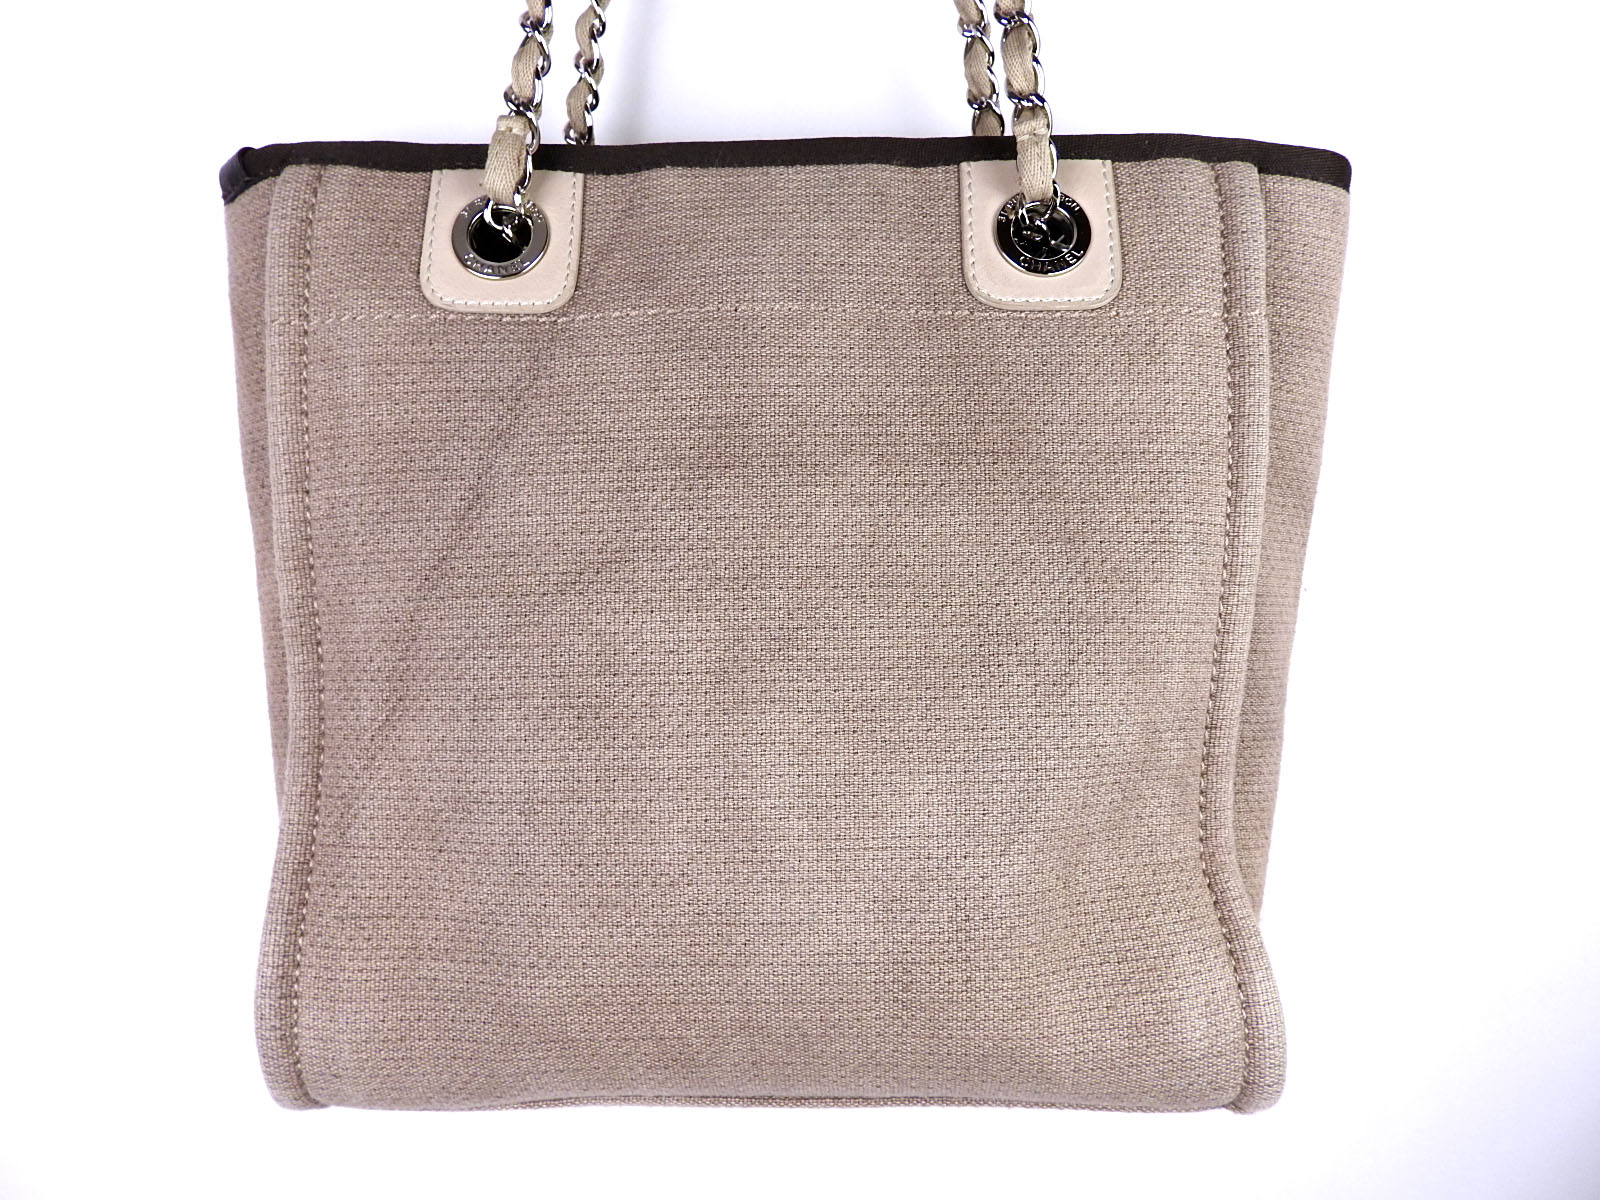 26cd926a7db0 Chanel Deauville Chain Shoulder Tote Bags | Stanford Center for ...